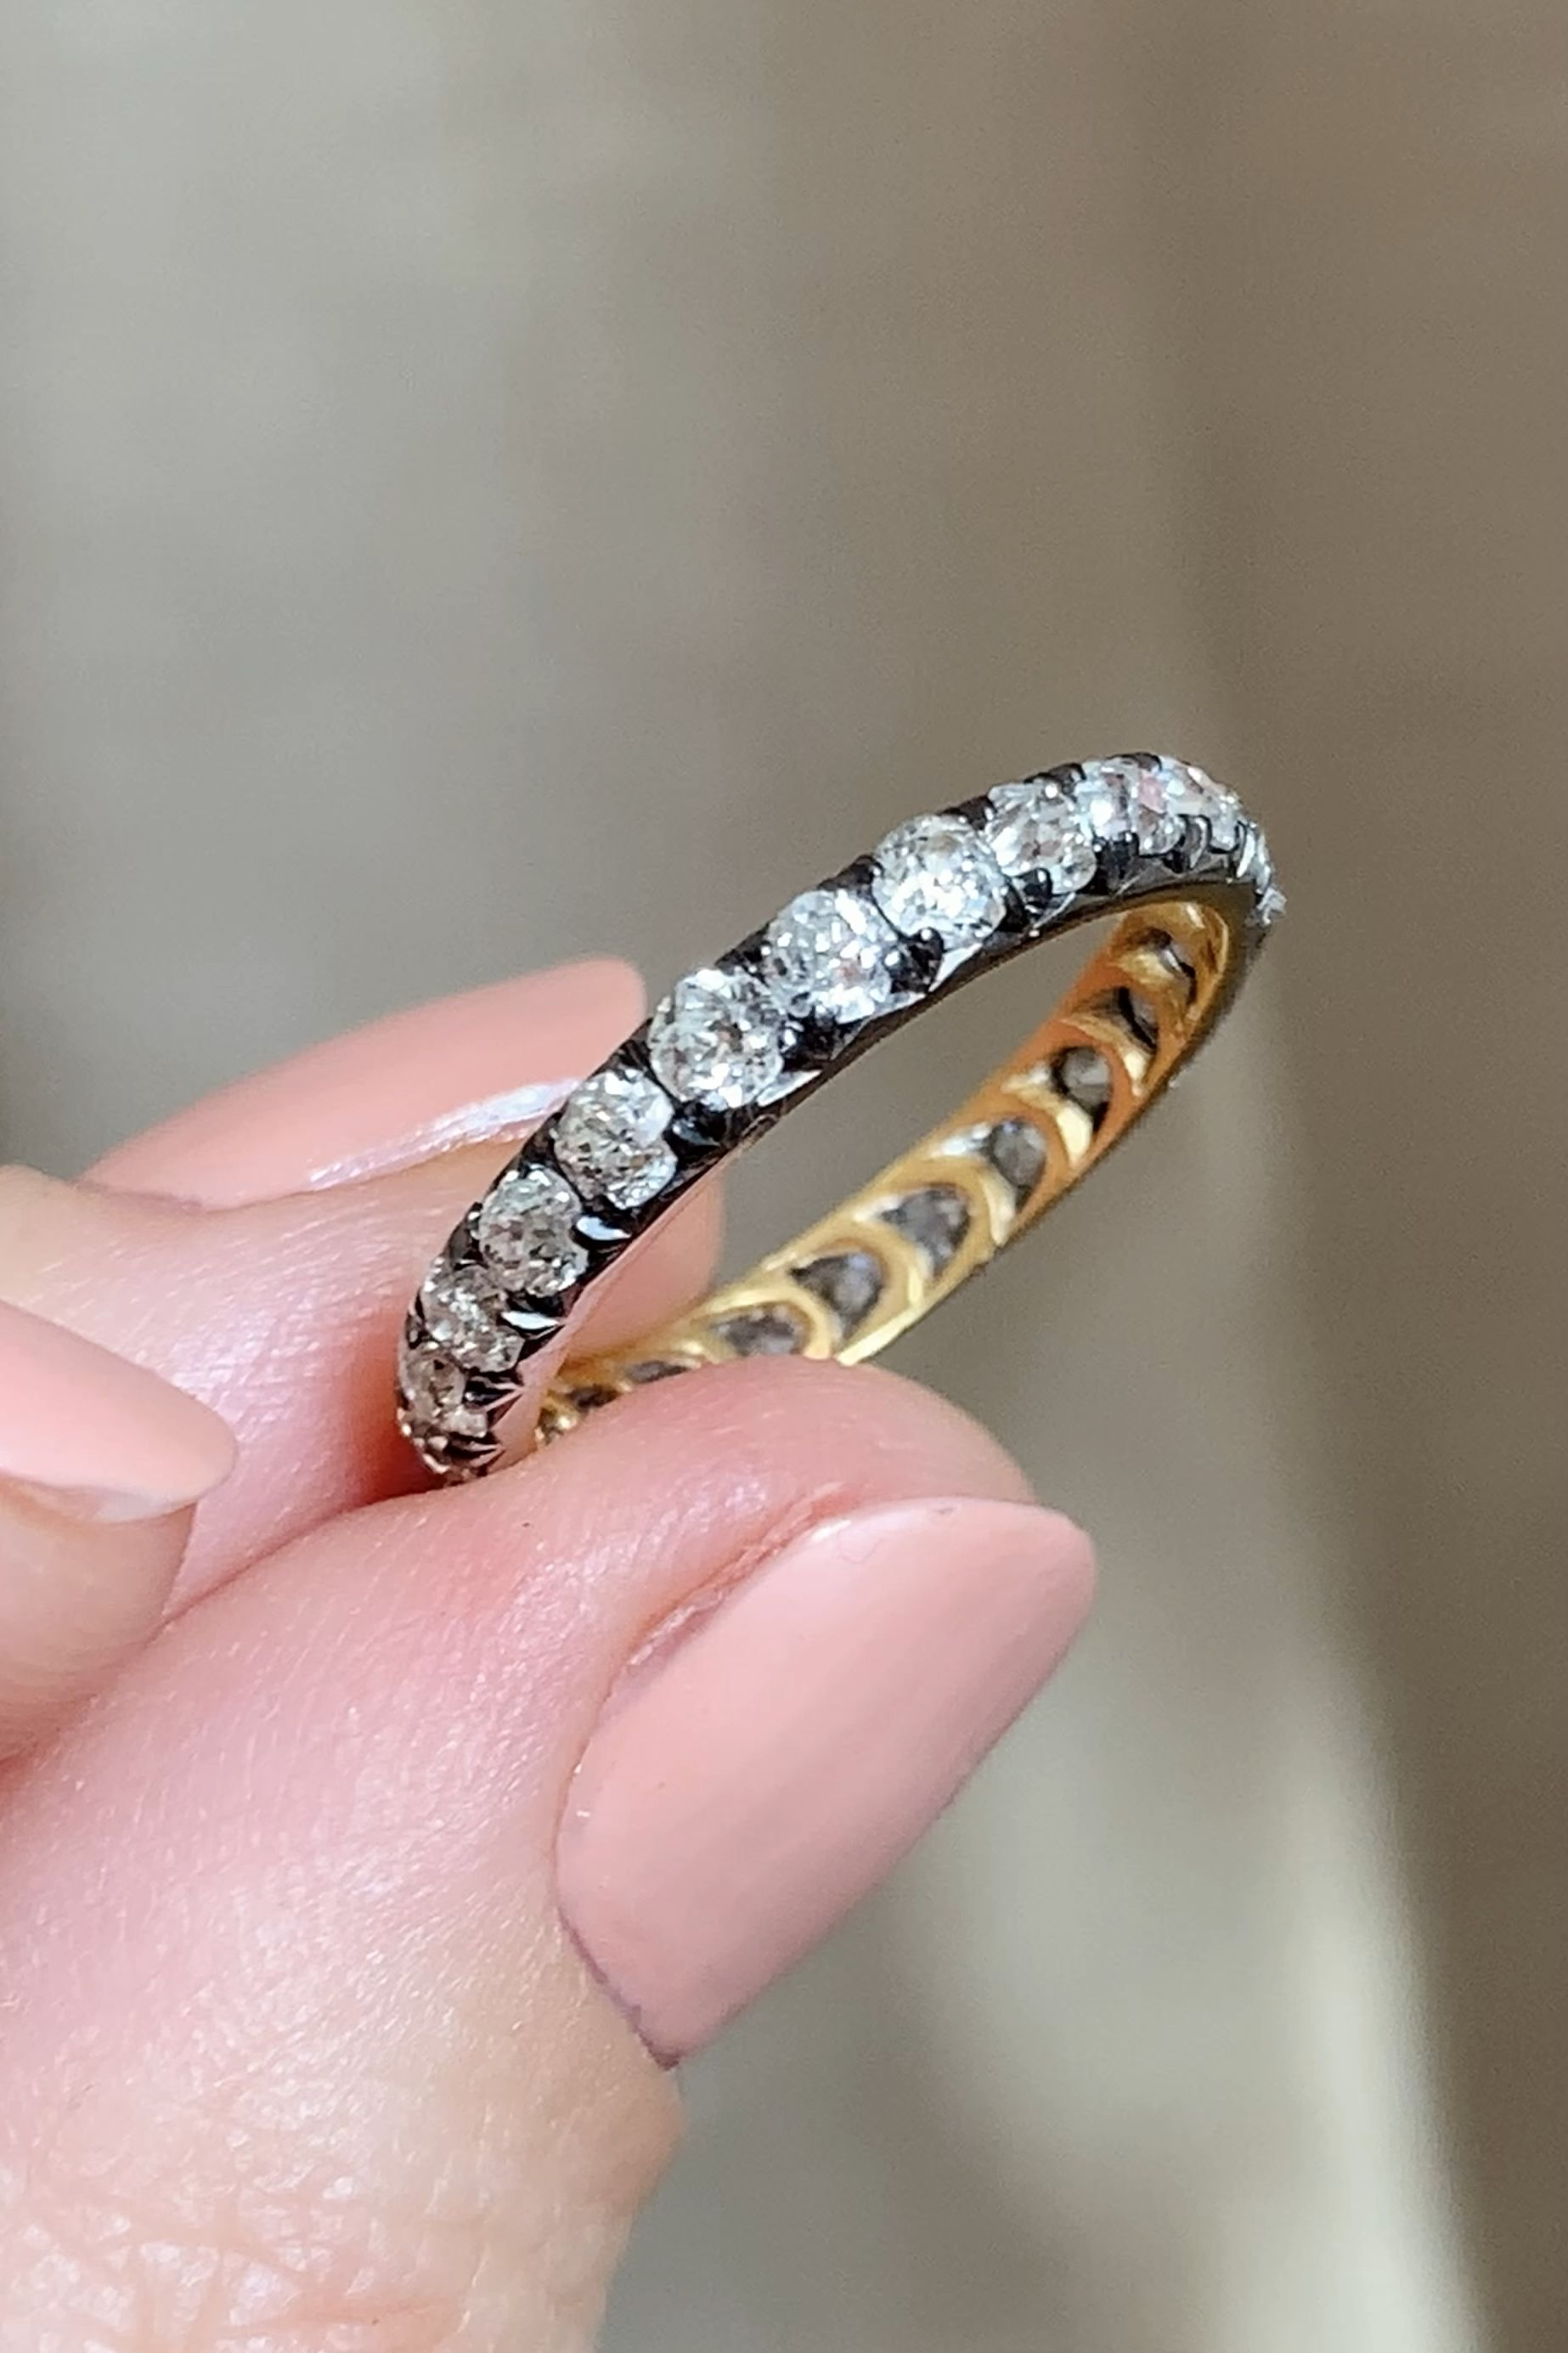 Details about  /18kt Gold 0.3ct Pave Diamond Play Sign Ring 925 Sterling Silver Fashion Jewelry